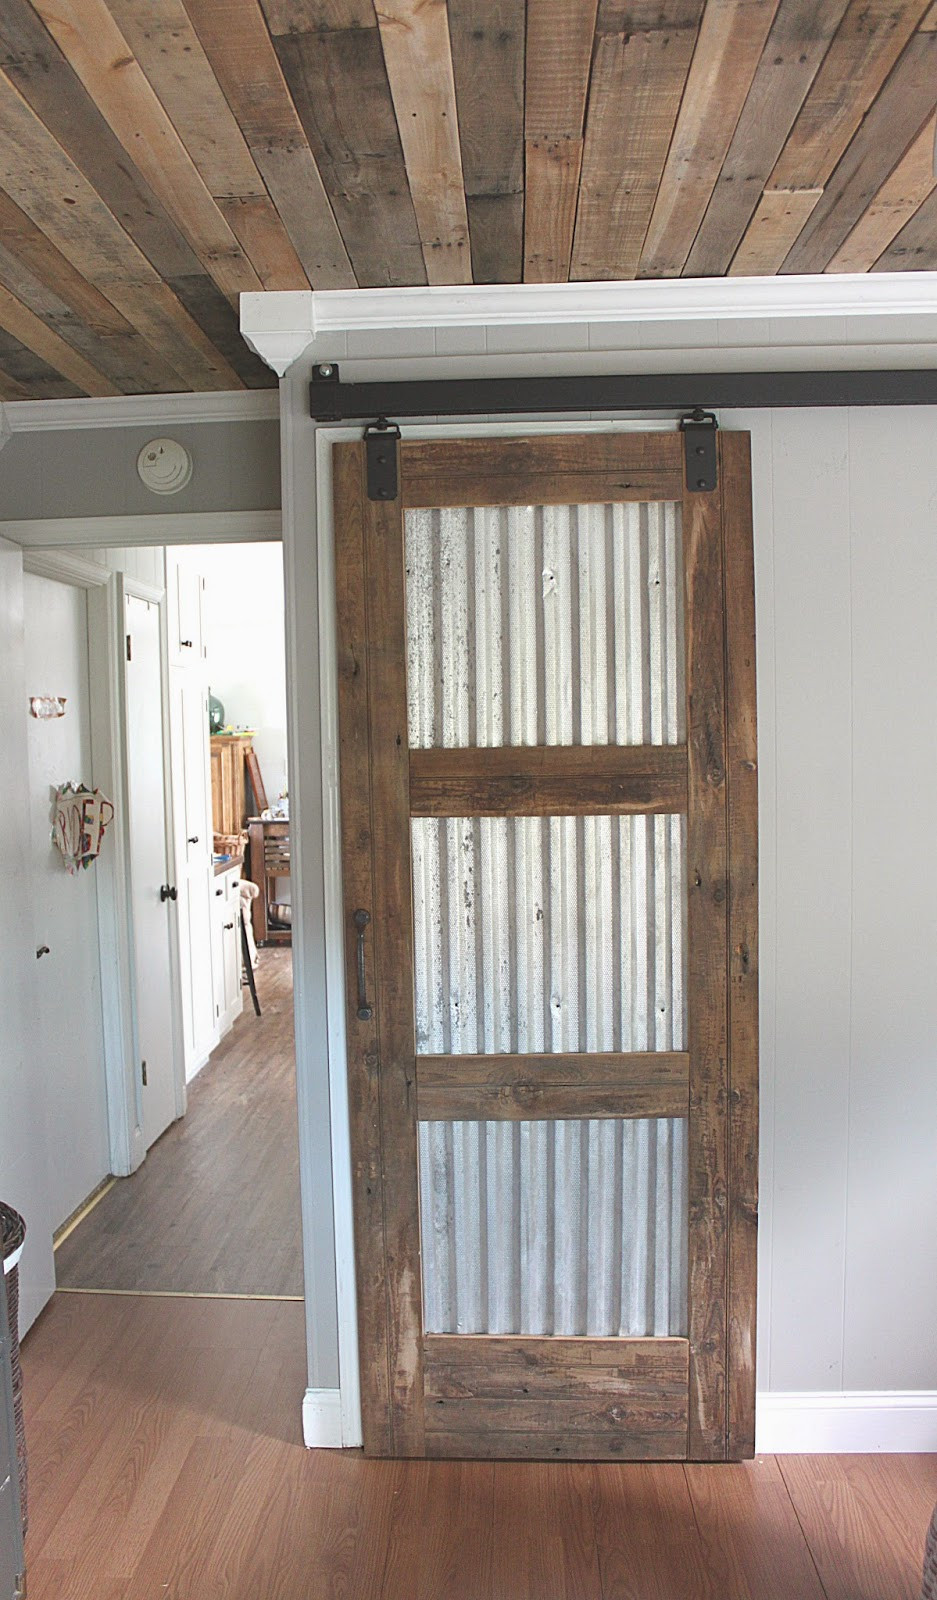 Best ideas about DIY Wood Doors . Save or Pin 21 DIY Barn Door Projects For An Easy Home Transformation Now.